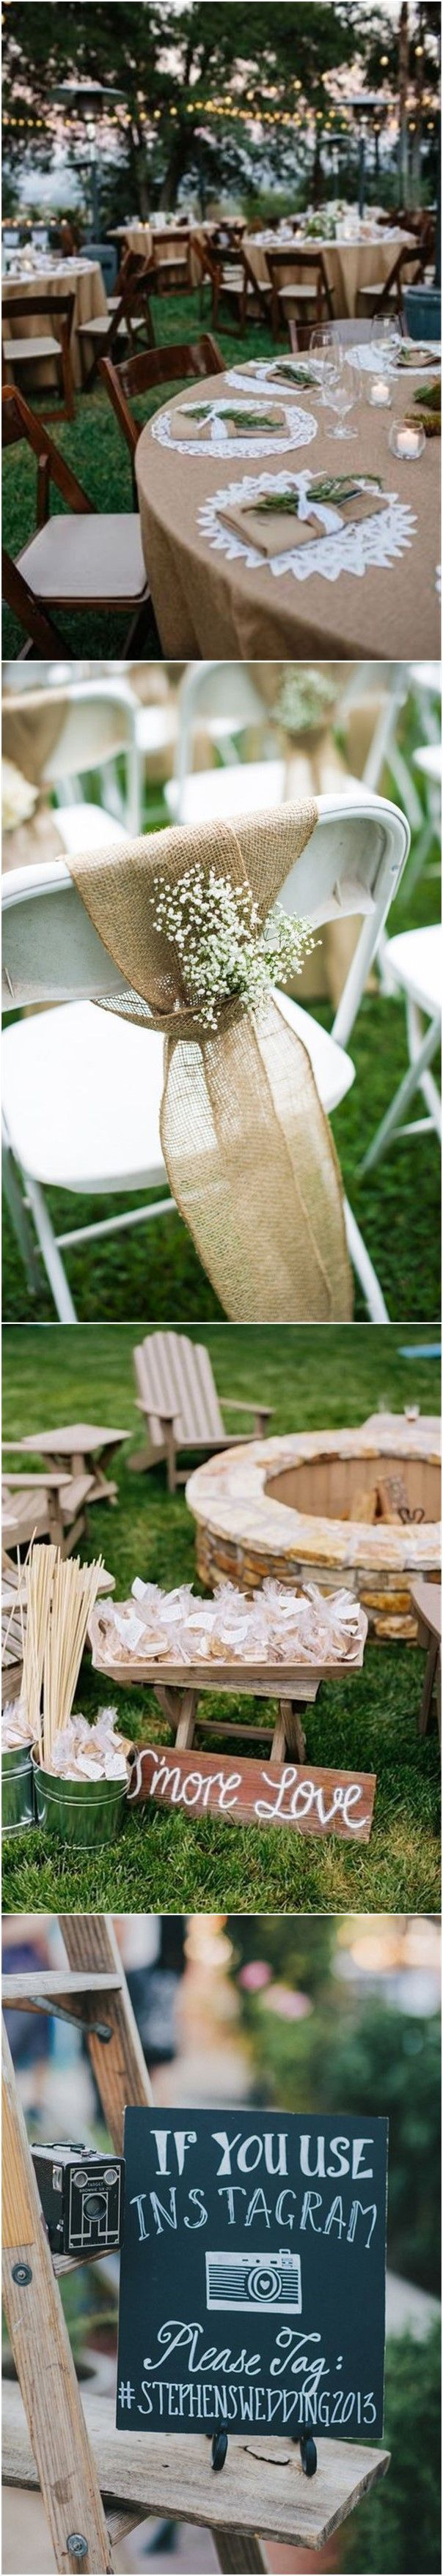 Best 25 backyard weddings ideas only on pinterest for Backyard wedding decoration ideas on a budget